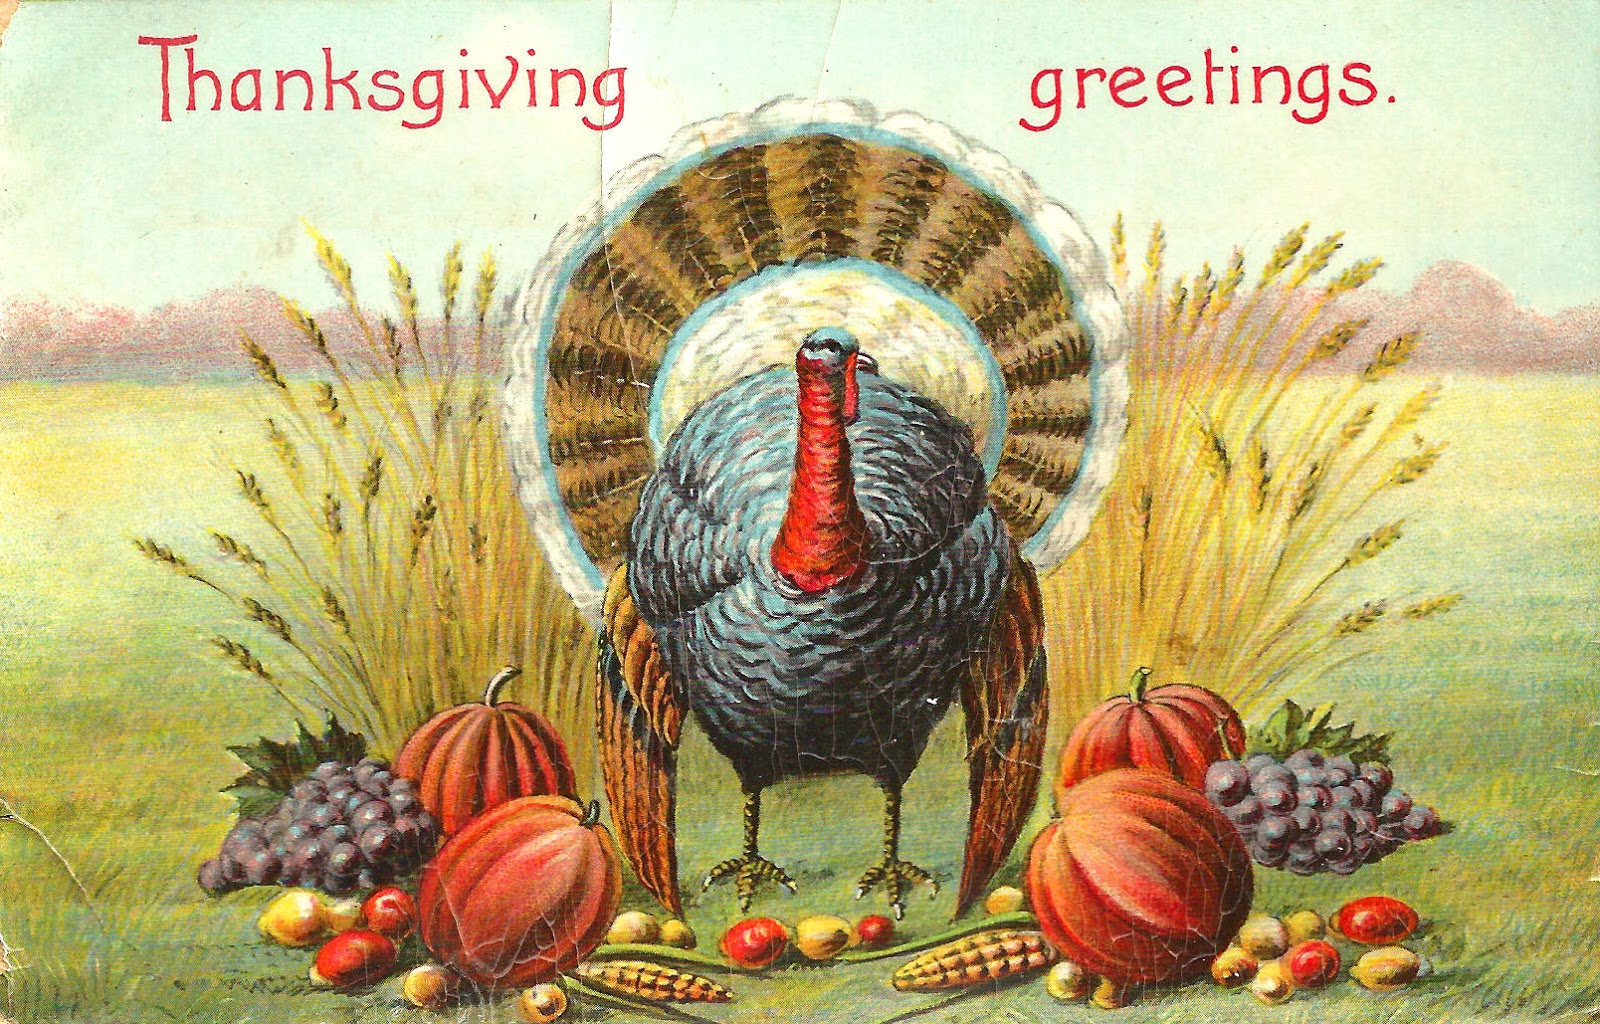 Antique Images: Free Vintage Thanksgiving Graphic: Vintage ...